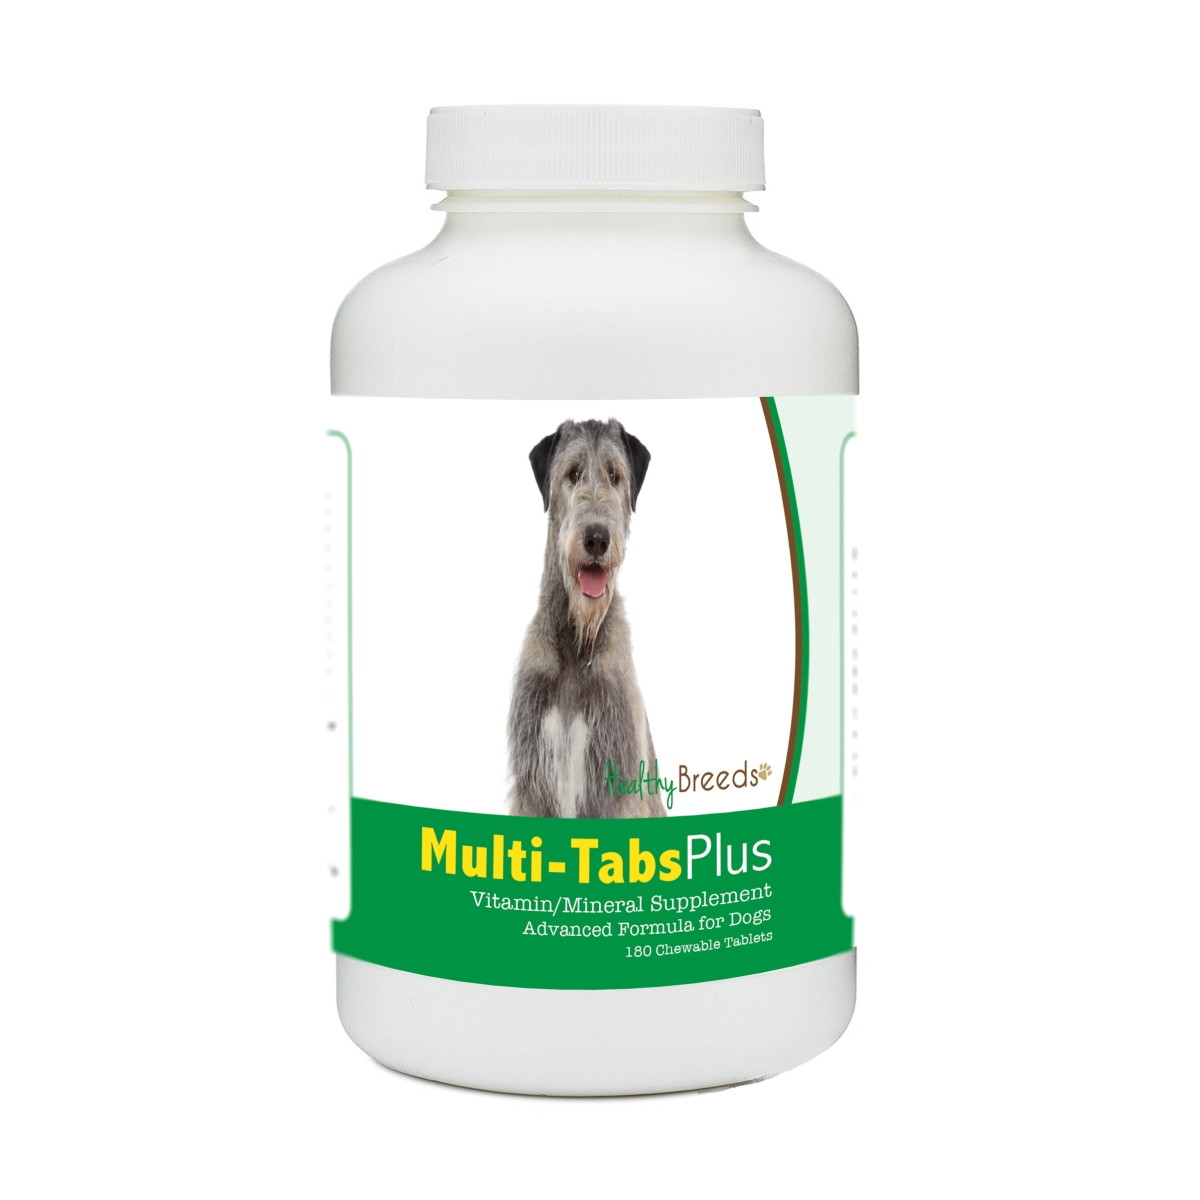 Healthy Breeds 840235140900 Irish Wolfhound Multi-Tabs Plus Chewable Tablets - 180 Count